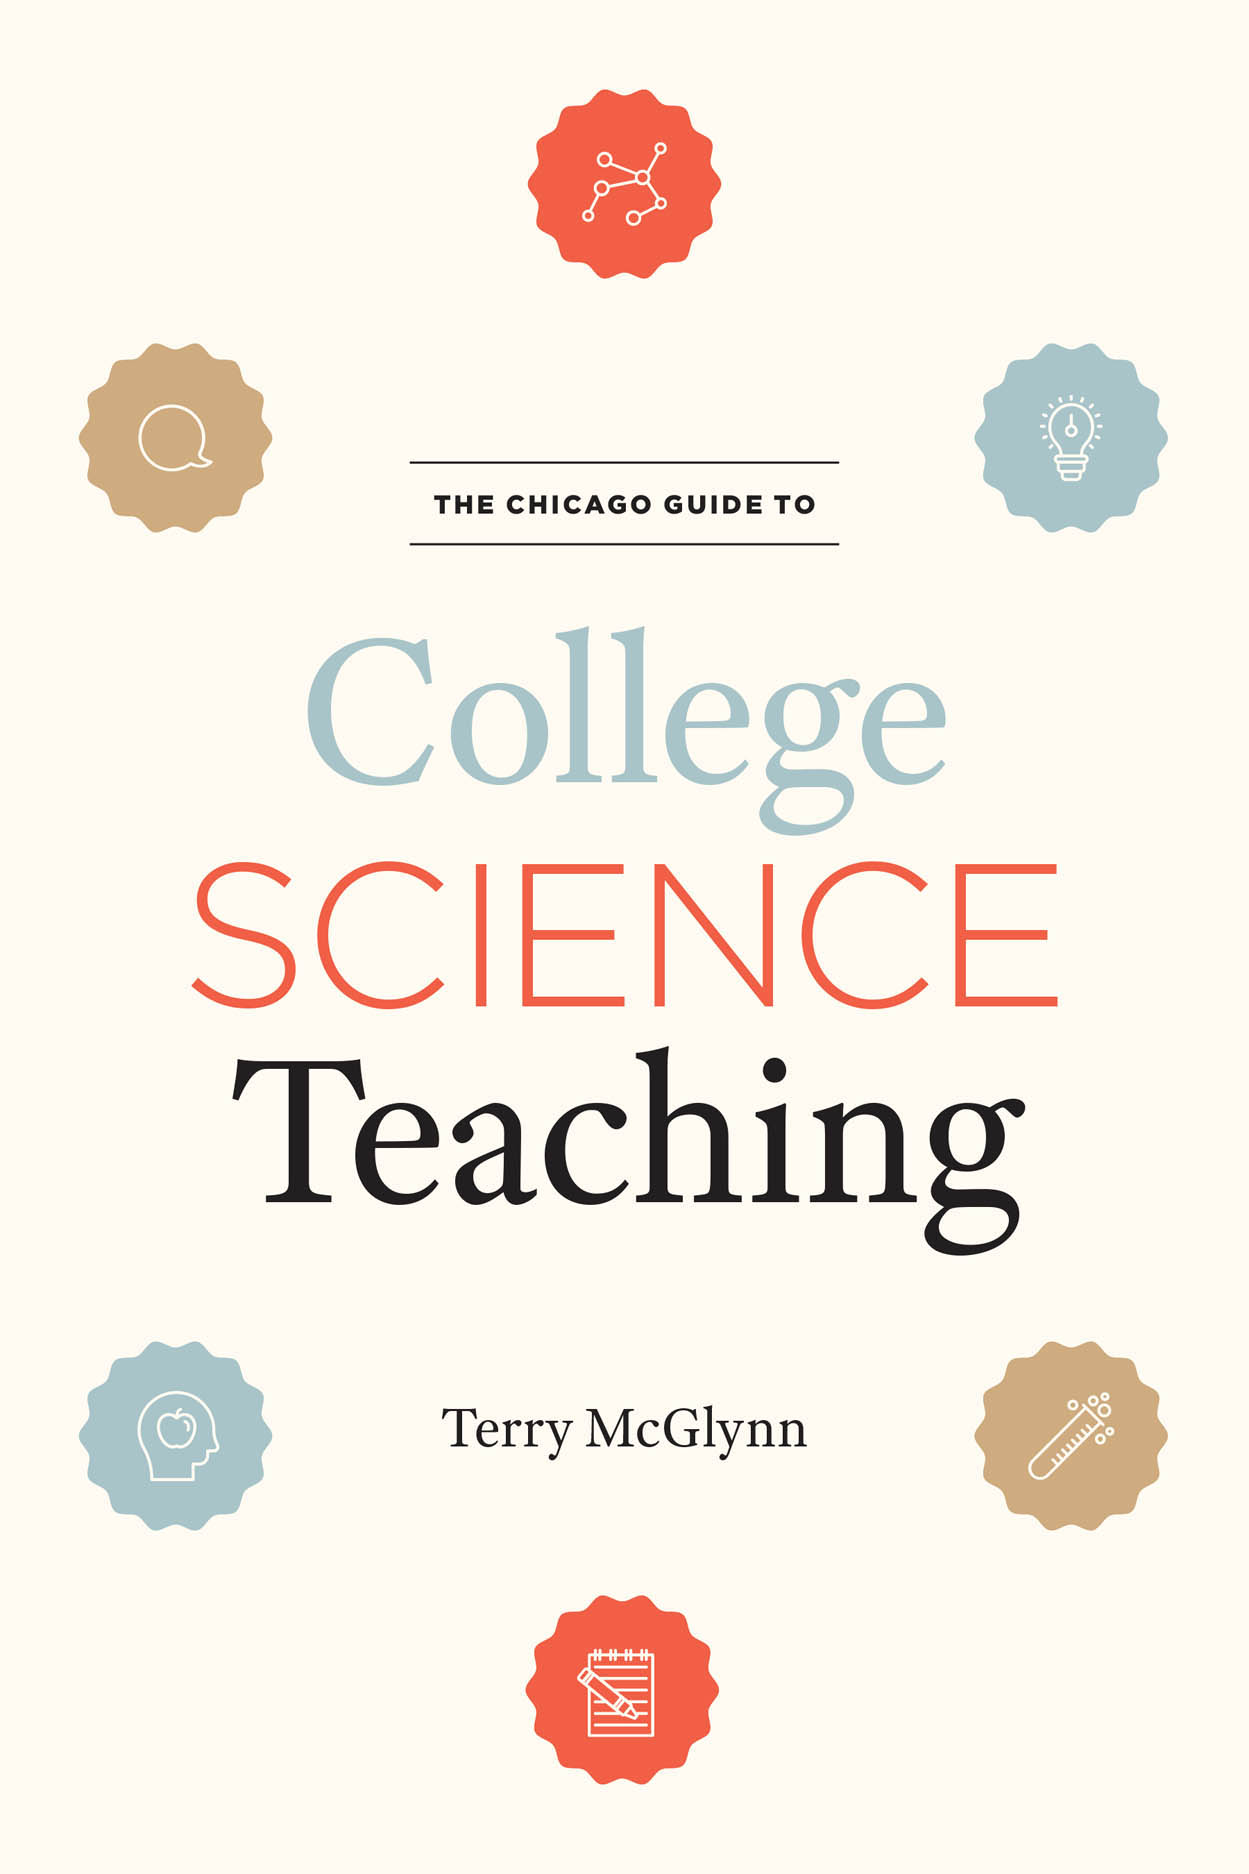 The Chicago Guide to College Science Teaching